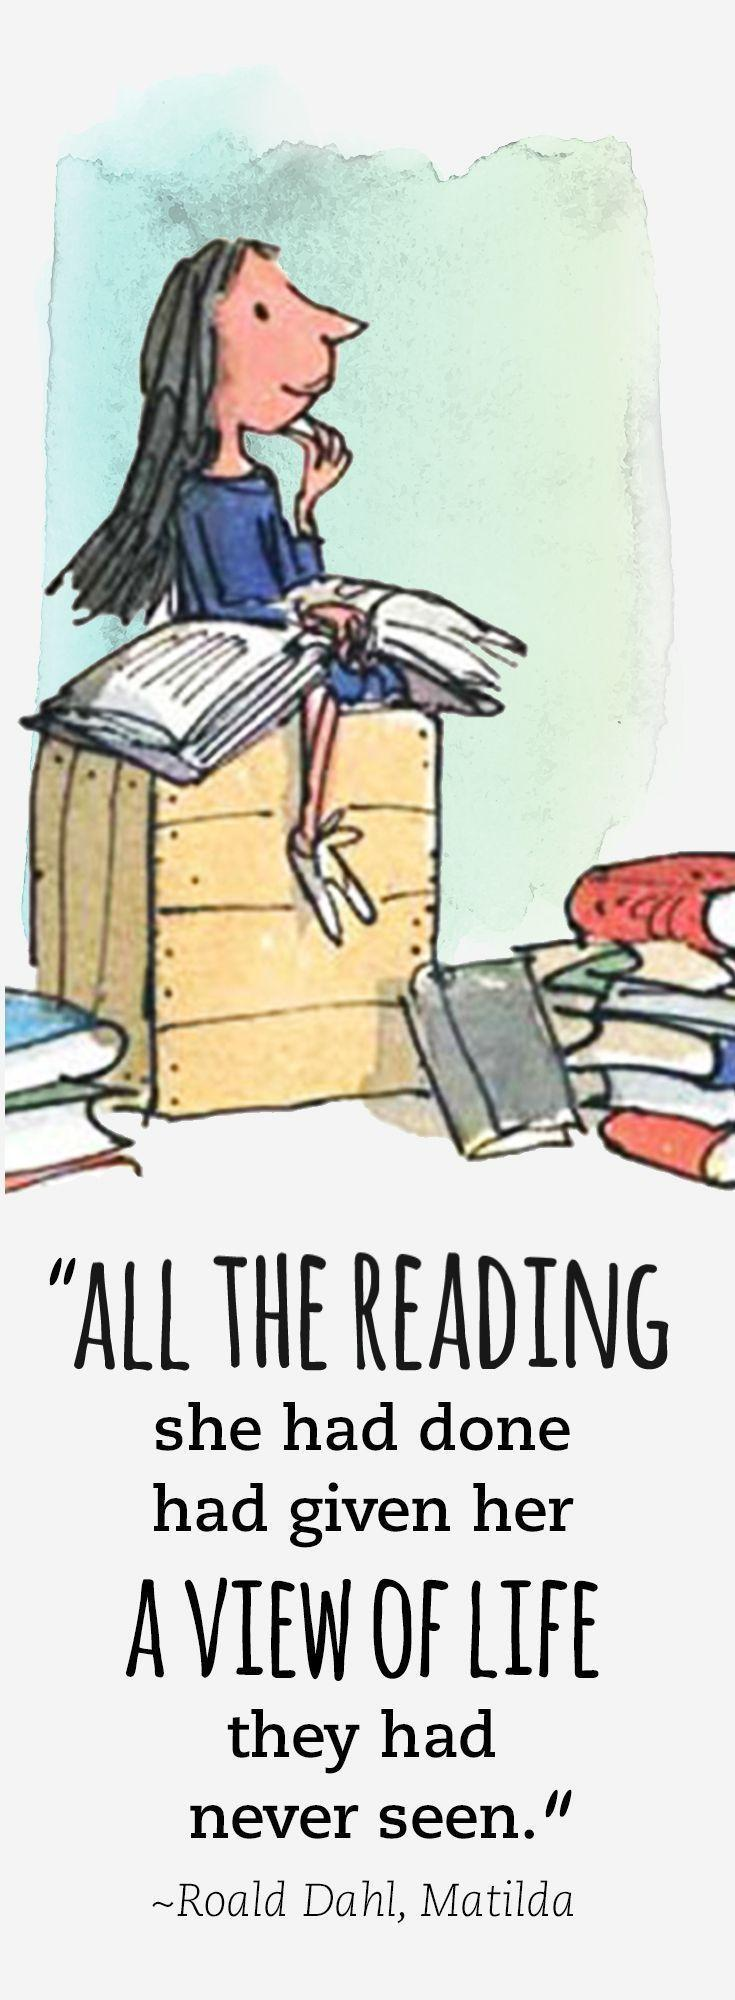 Quote by Roald Dahl, 'All the reading she had done had given her a view of life they had never seen.'